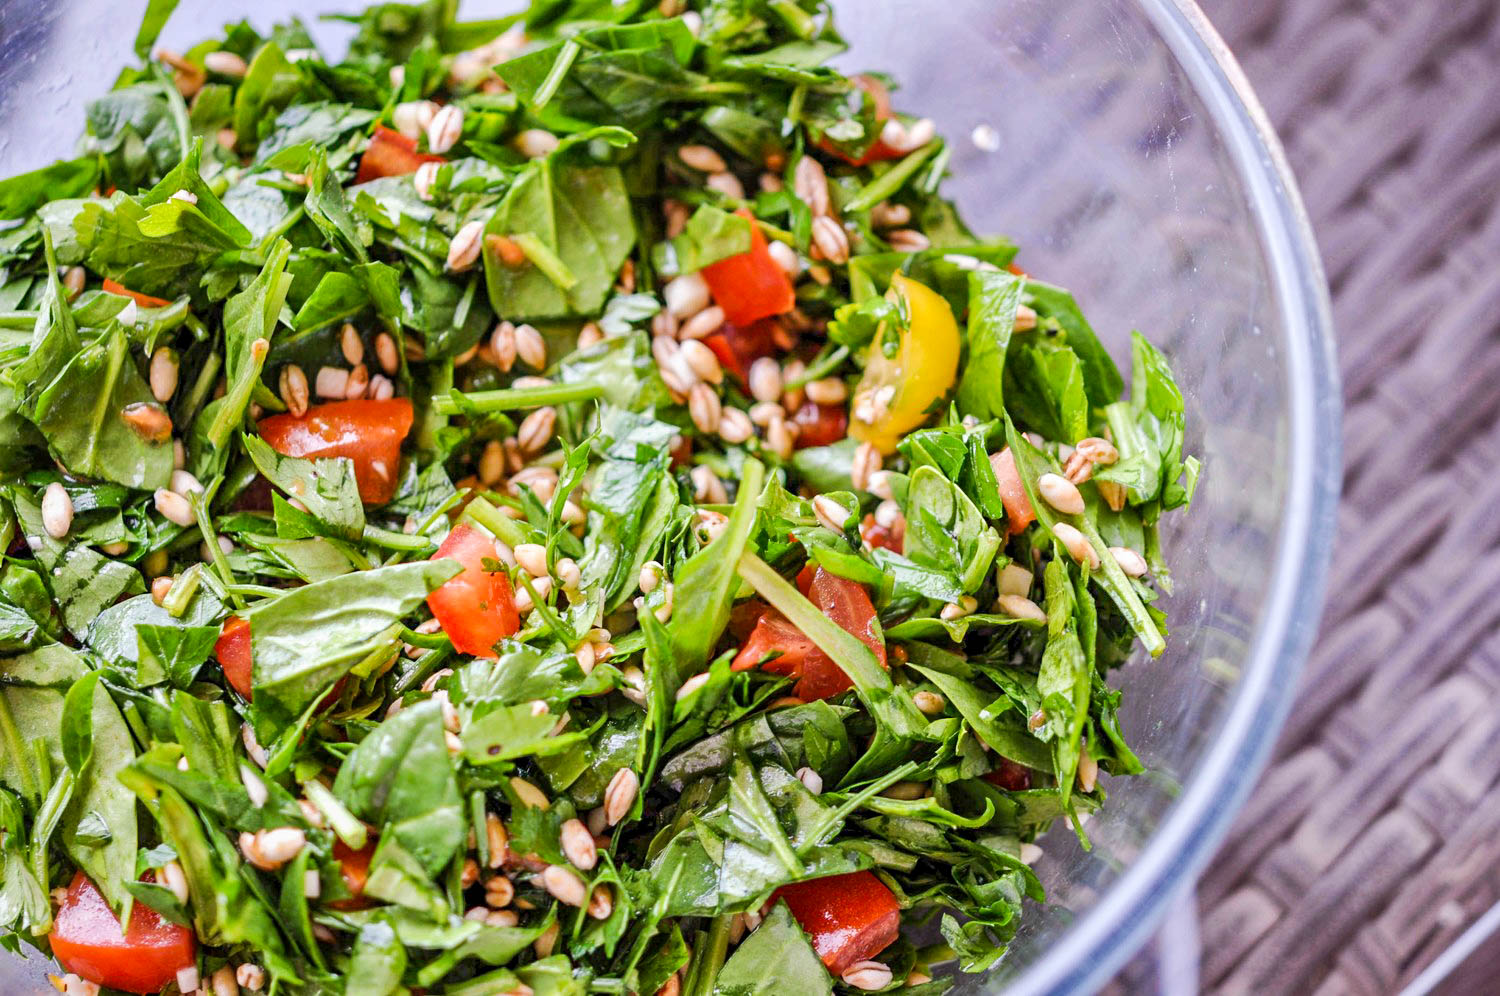 Bulgur Salad with Spinach, Parsley, and Tomatoes